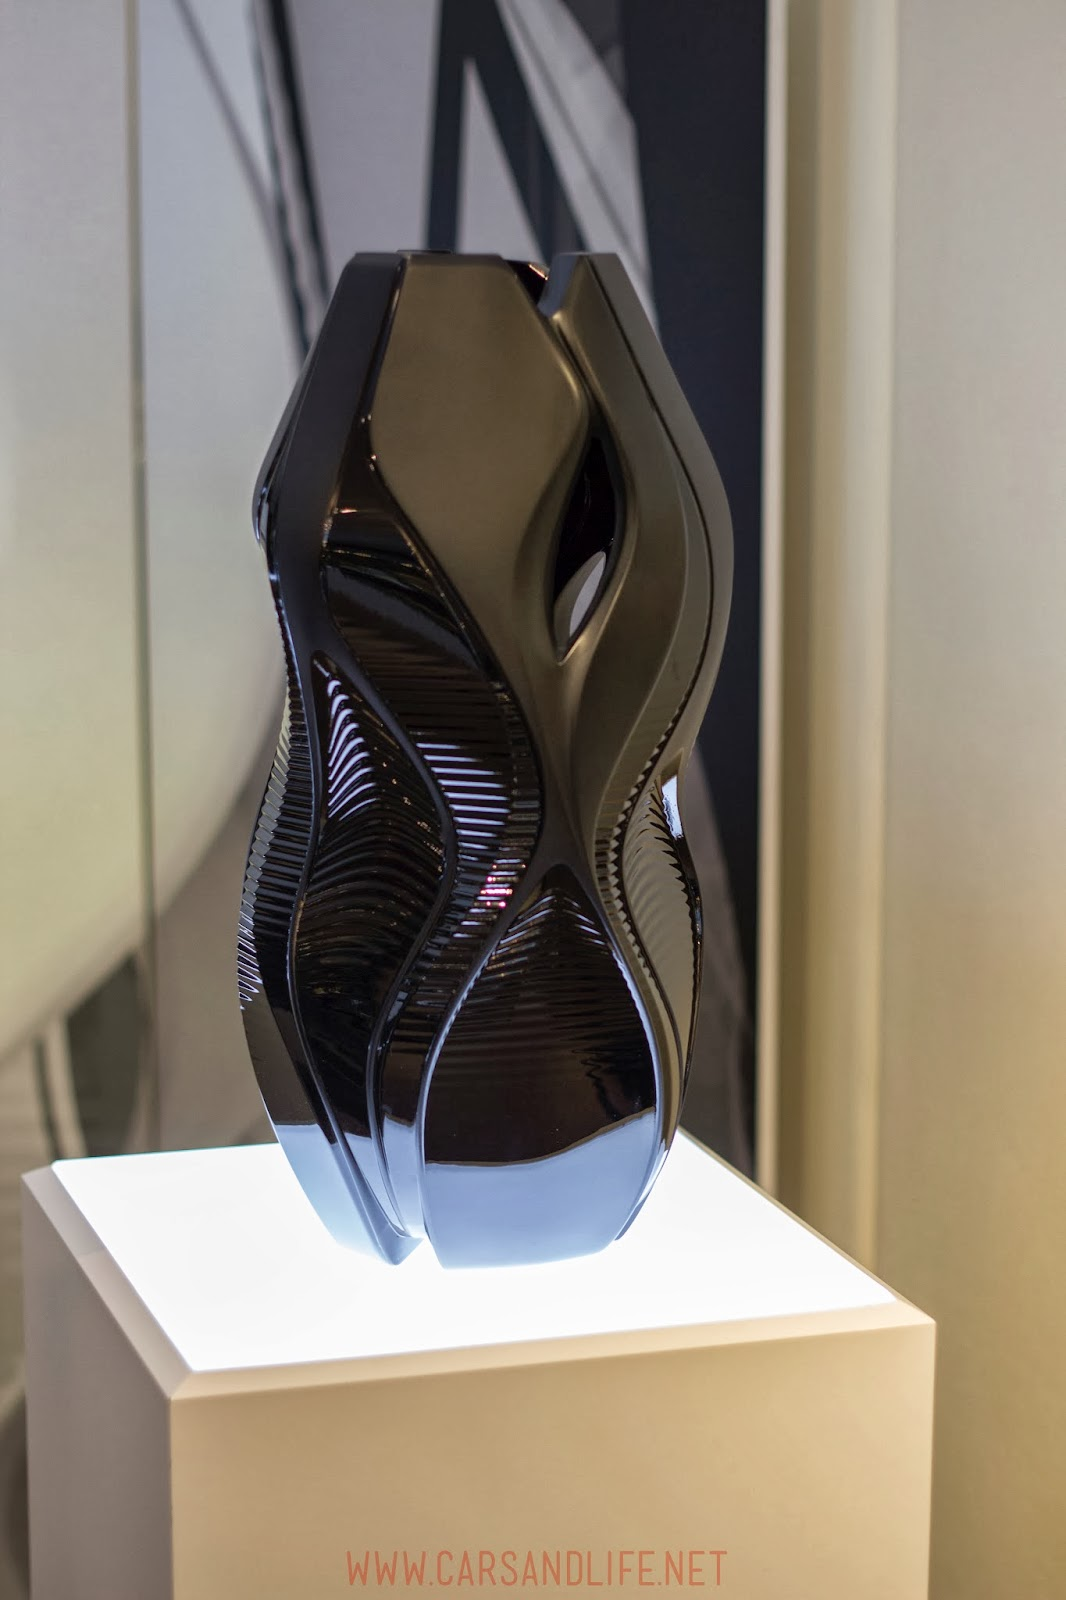 Lalique   Crystal Architecture by Zaha Hadid